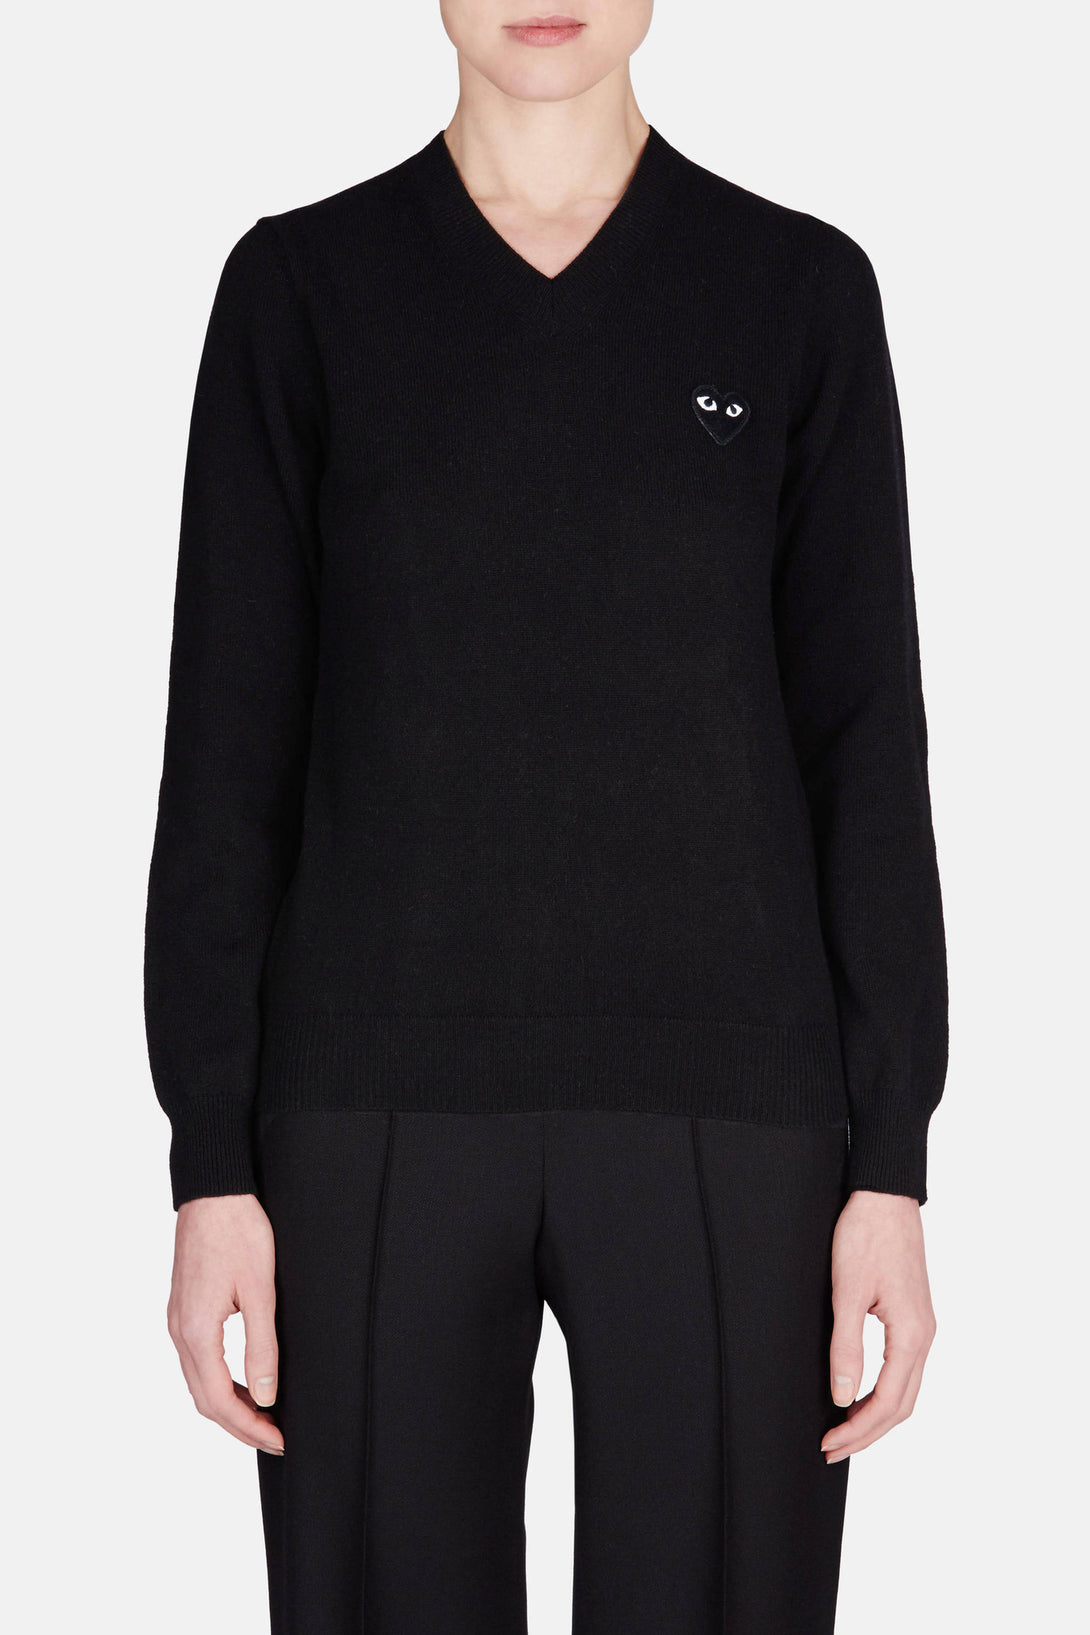 Black Play V-Neck Sweater - Black